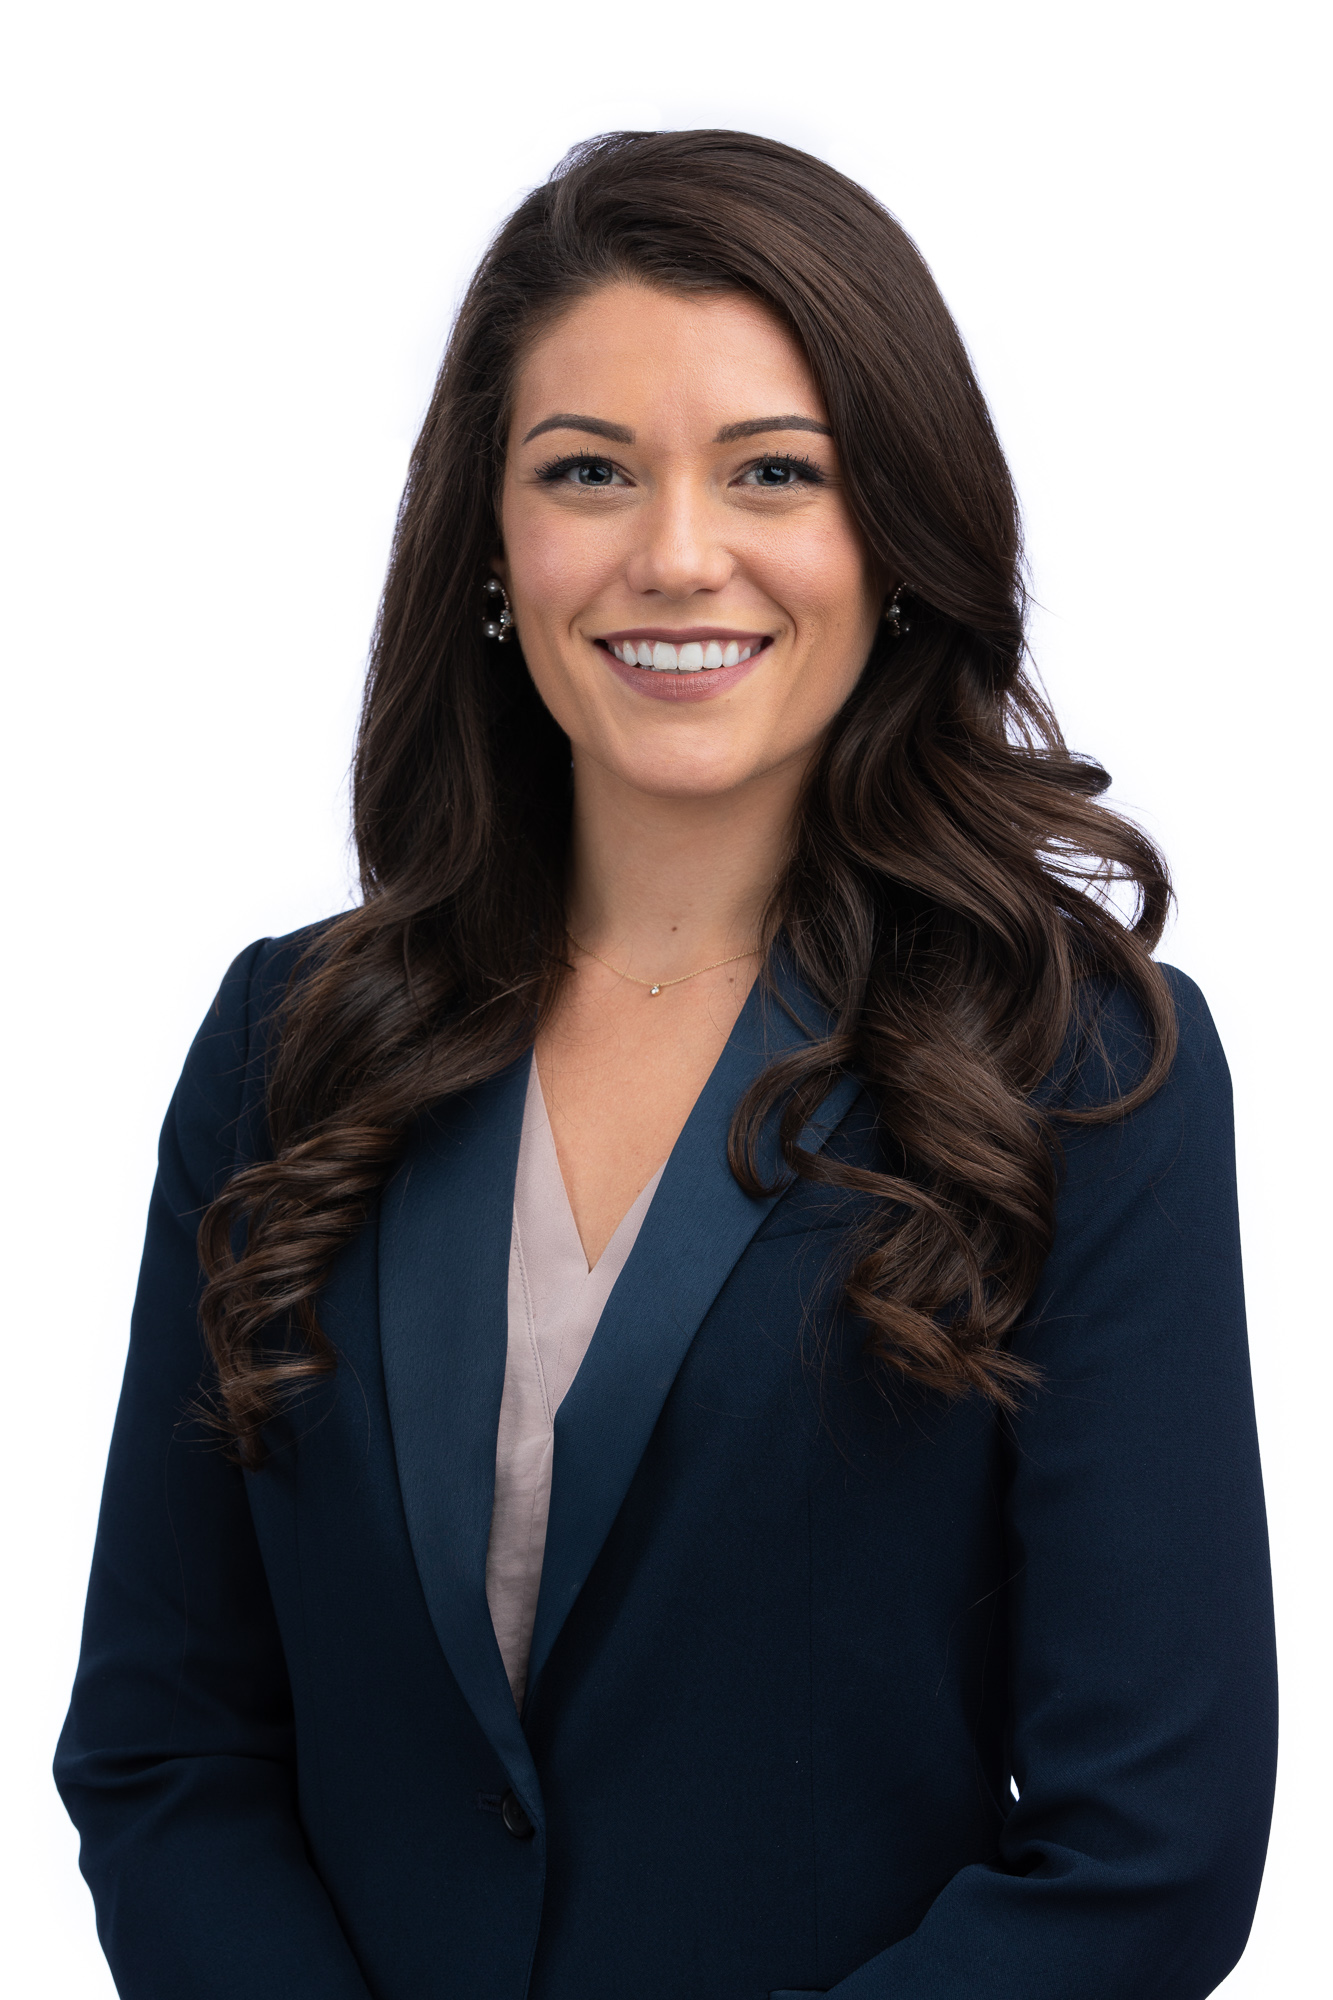 Lindsay M. Kornegay - A recent graduate of the University of California, Hastings College of Law, Lindsay's practice will focus primarily on Business & Corporate and Banking & Finance matters.Read more…